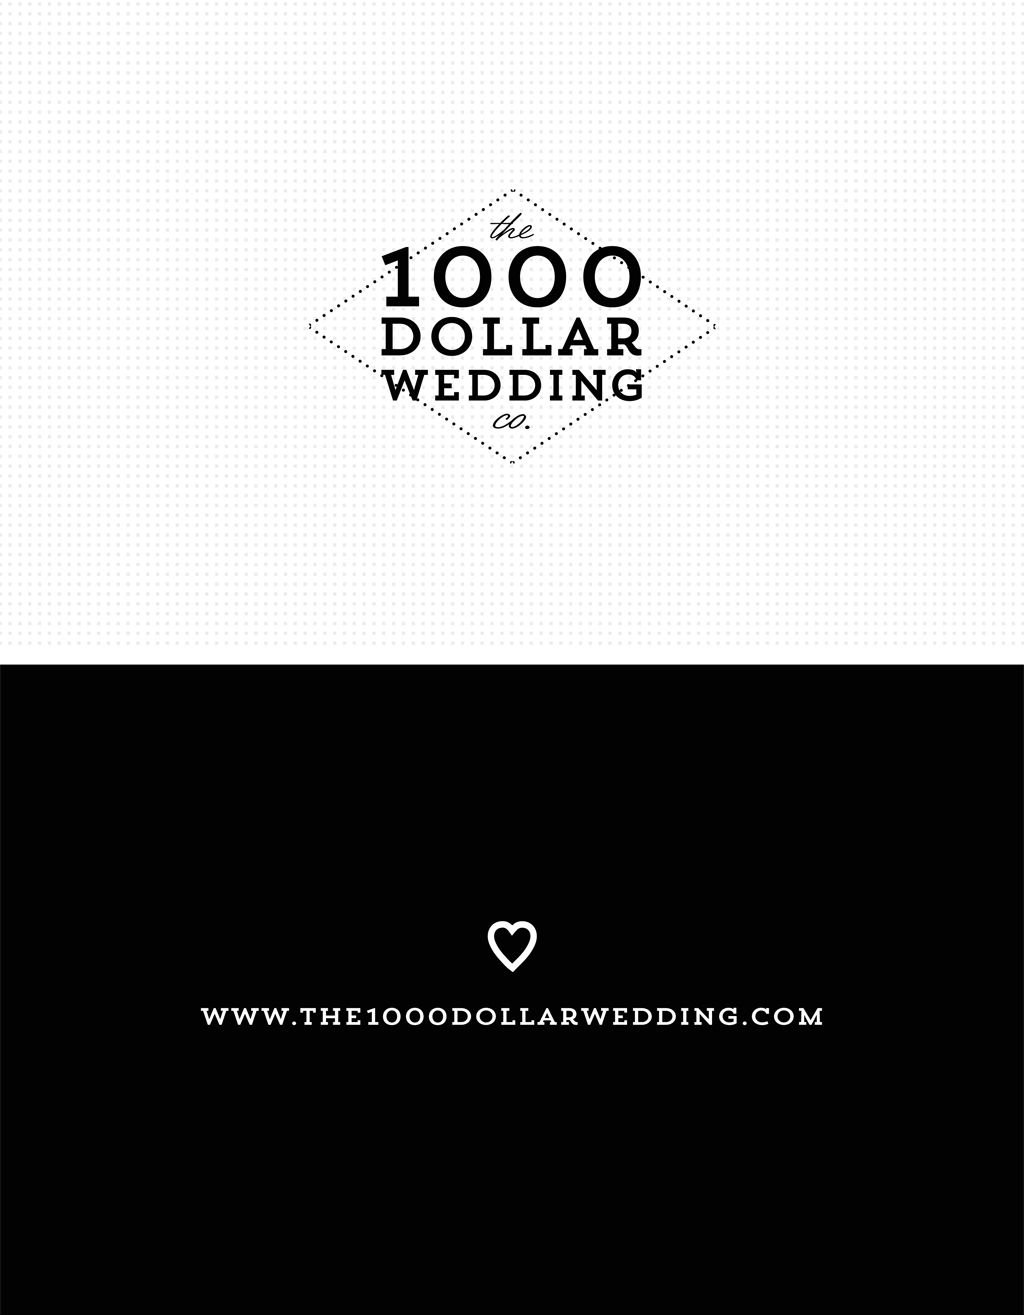 The 1000 Dollar Wedding Branding Design And Logo Love The Quirky Character Mascots That Are A Part O Wedding Branding Design Wedding Branding Branding Design